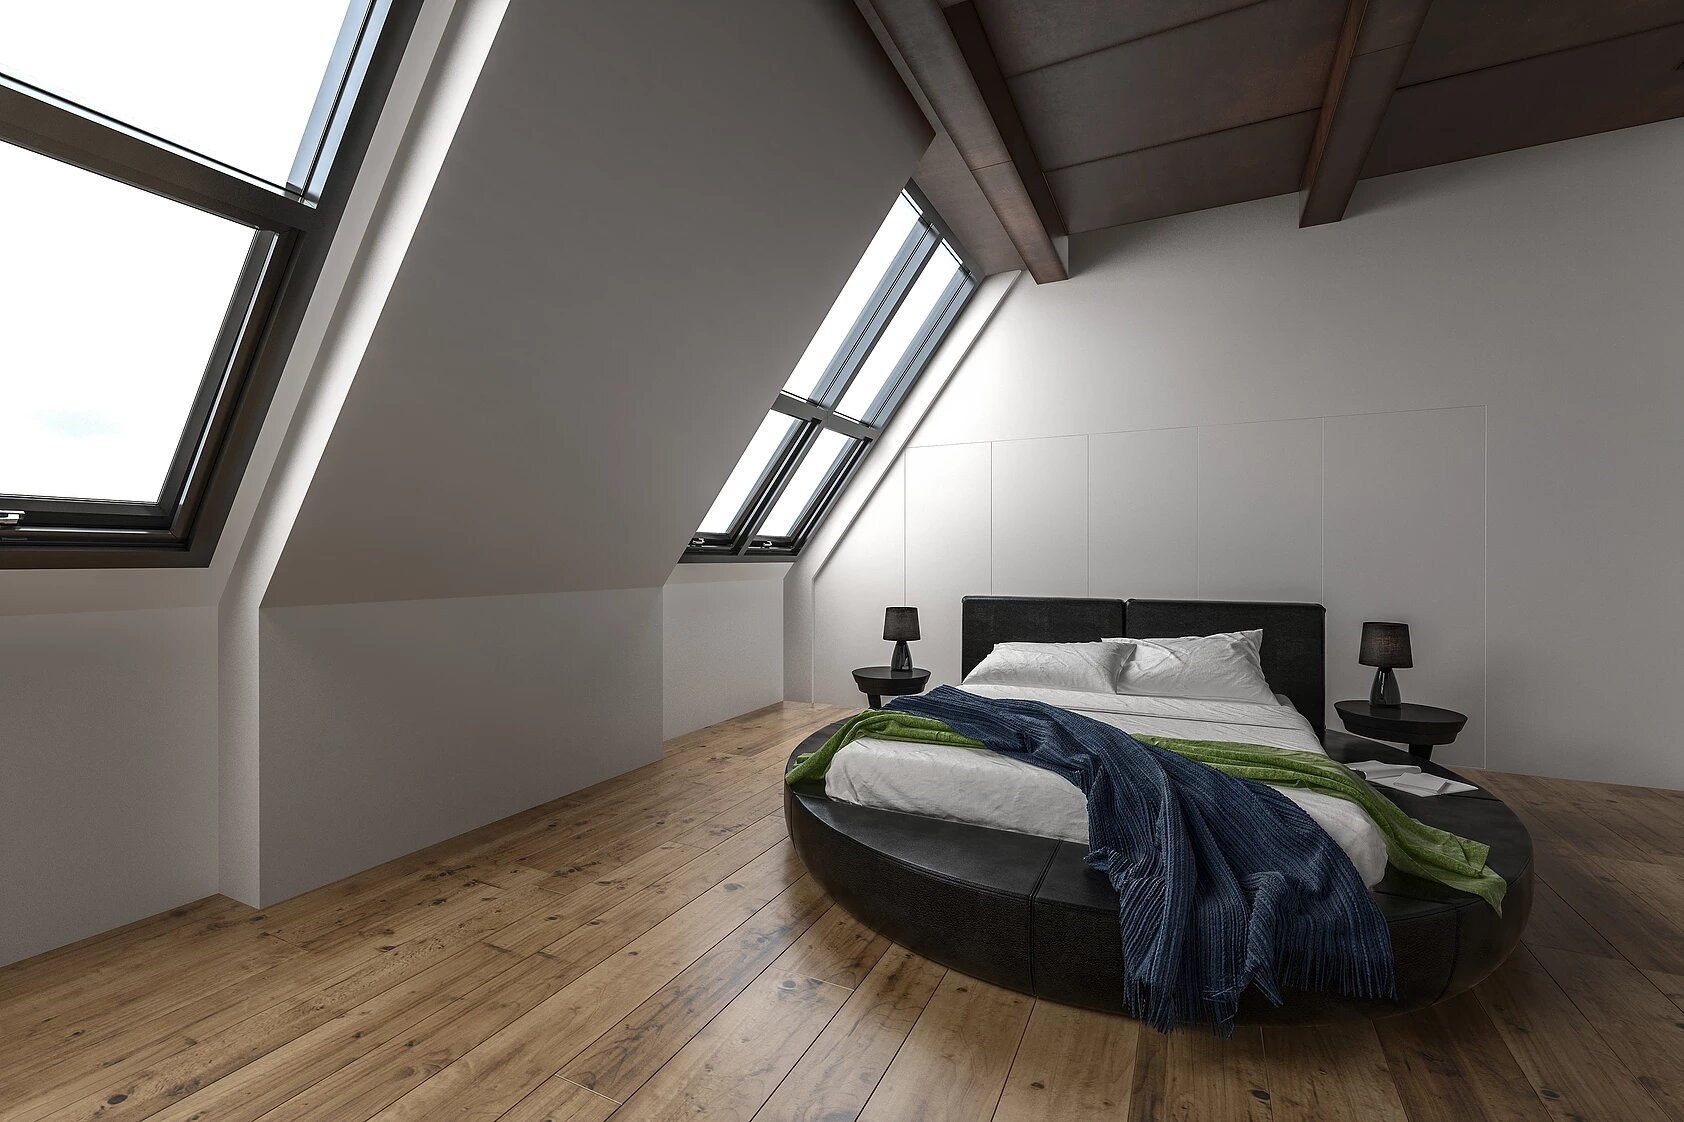 Loft conversion design+build